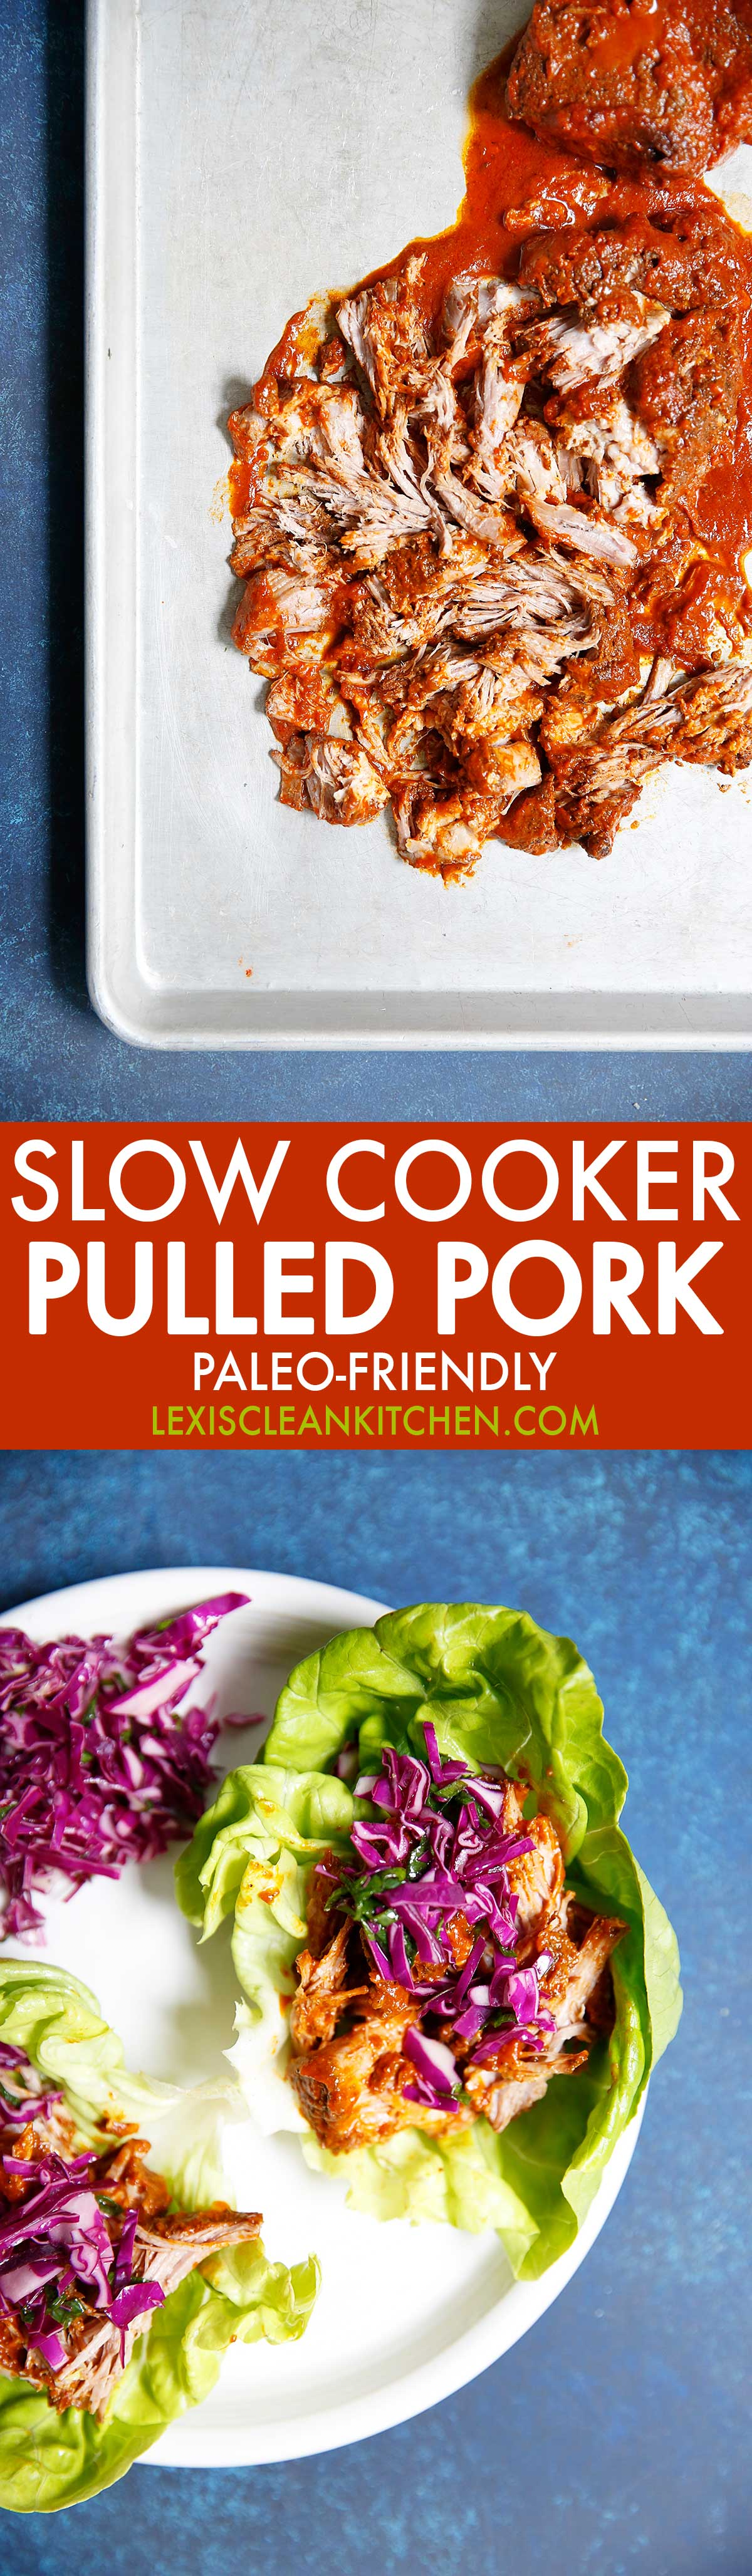 Pulled Pork {Paleo-friendly, grain-free, dairy-free, no refined sugar} | Lexi's Clean Kitchen